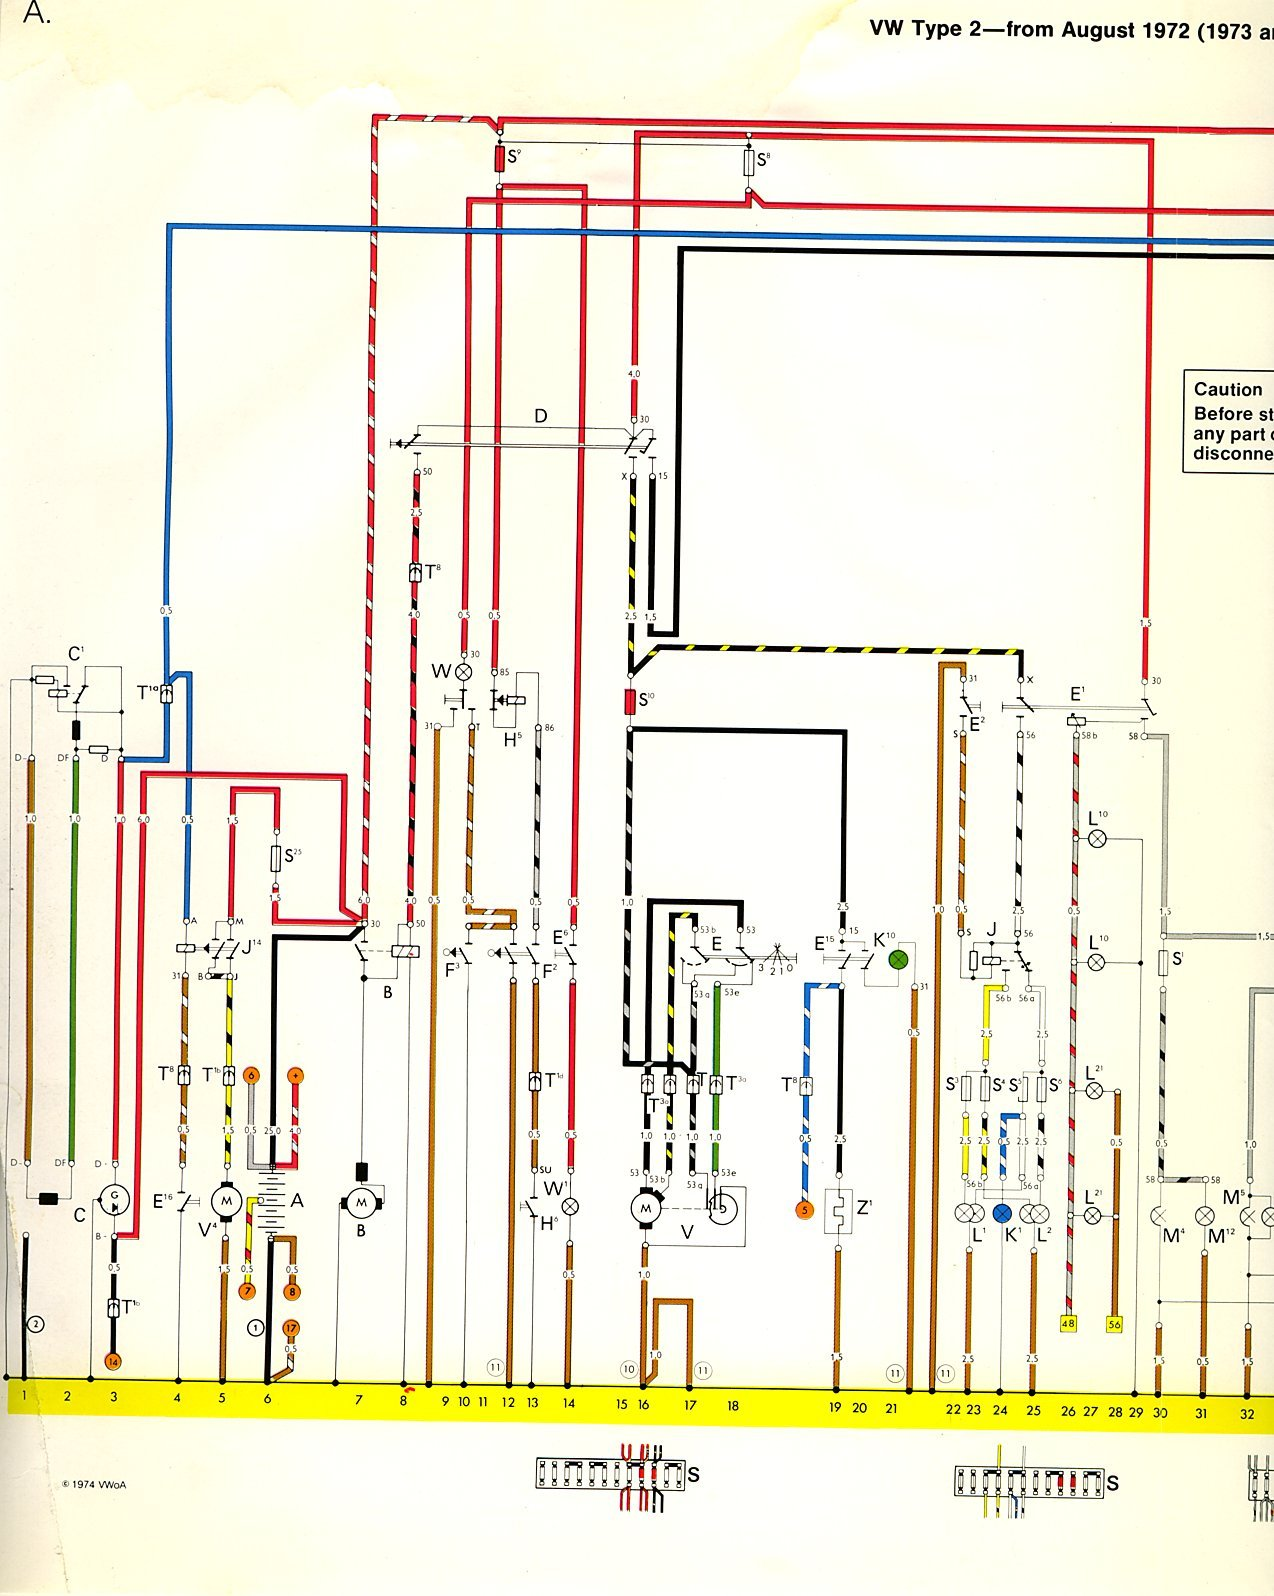 74 beetle wiring diagram for lights on 74 bug wiring schematics i'm looking for a color-coded wiring diagram for a 1973 vw ...